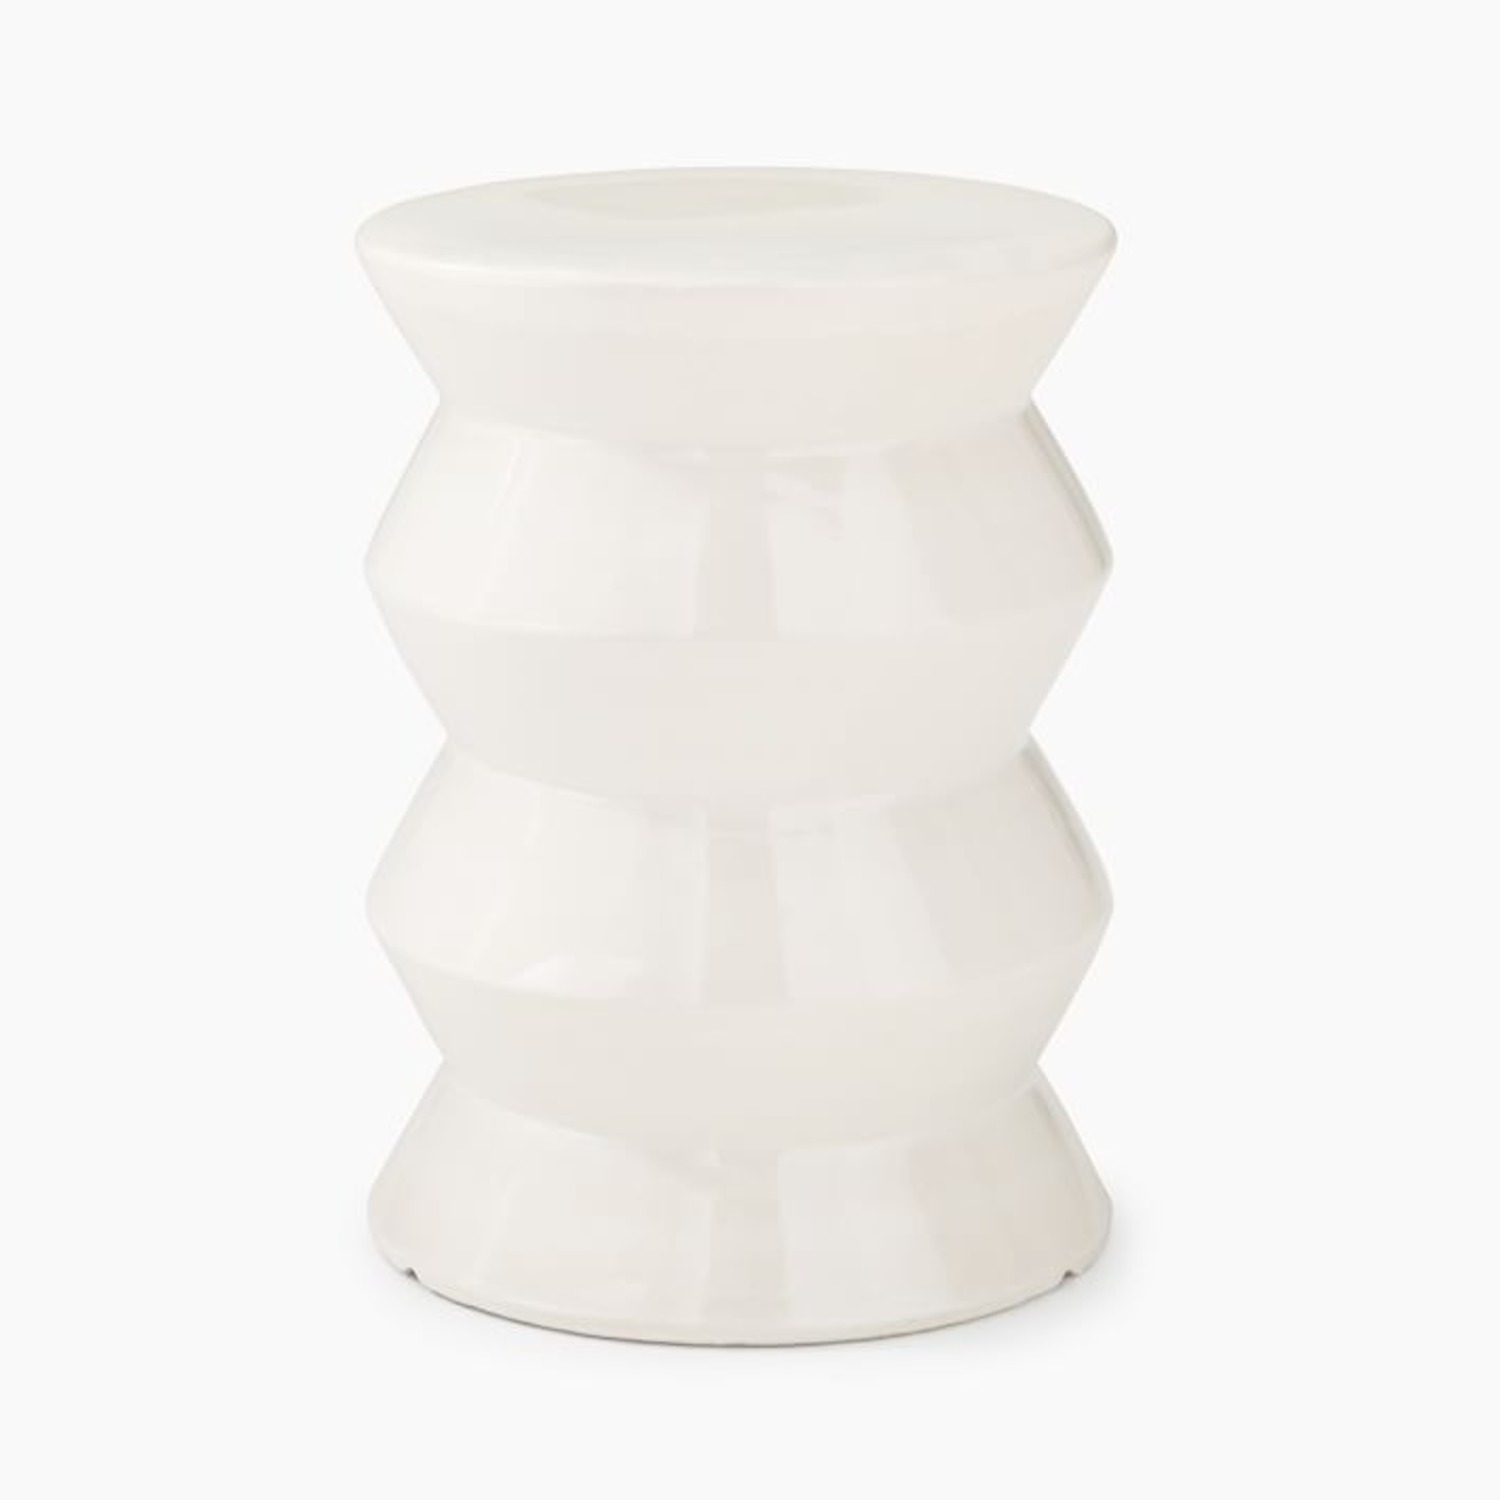 West Elm Cami Ivory Side Table - image-3